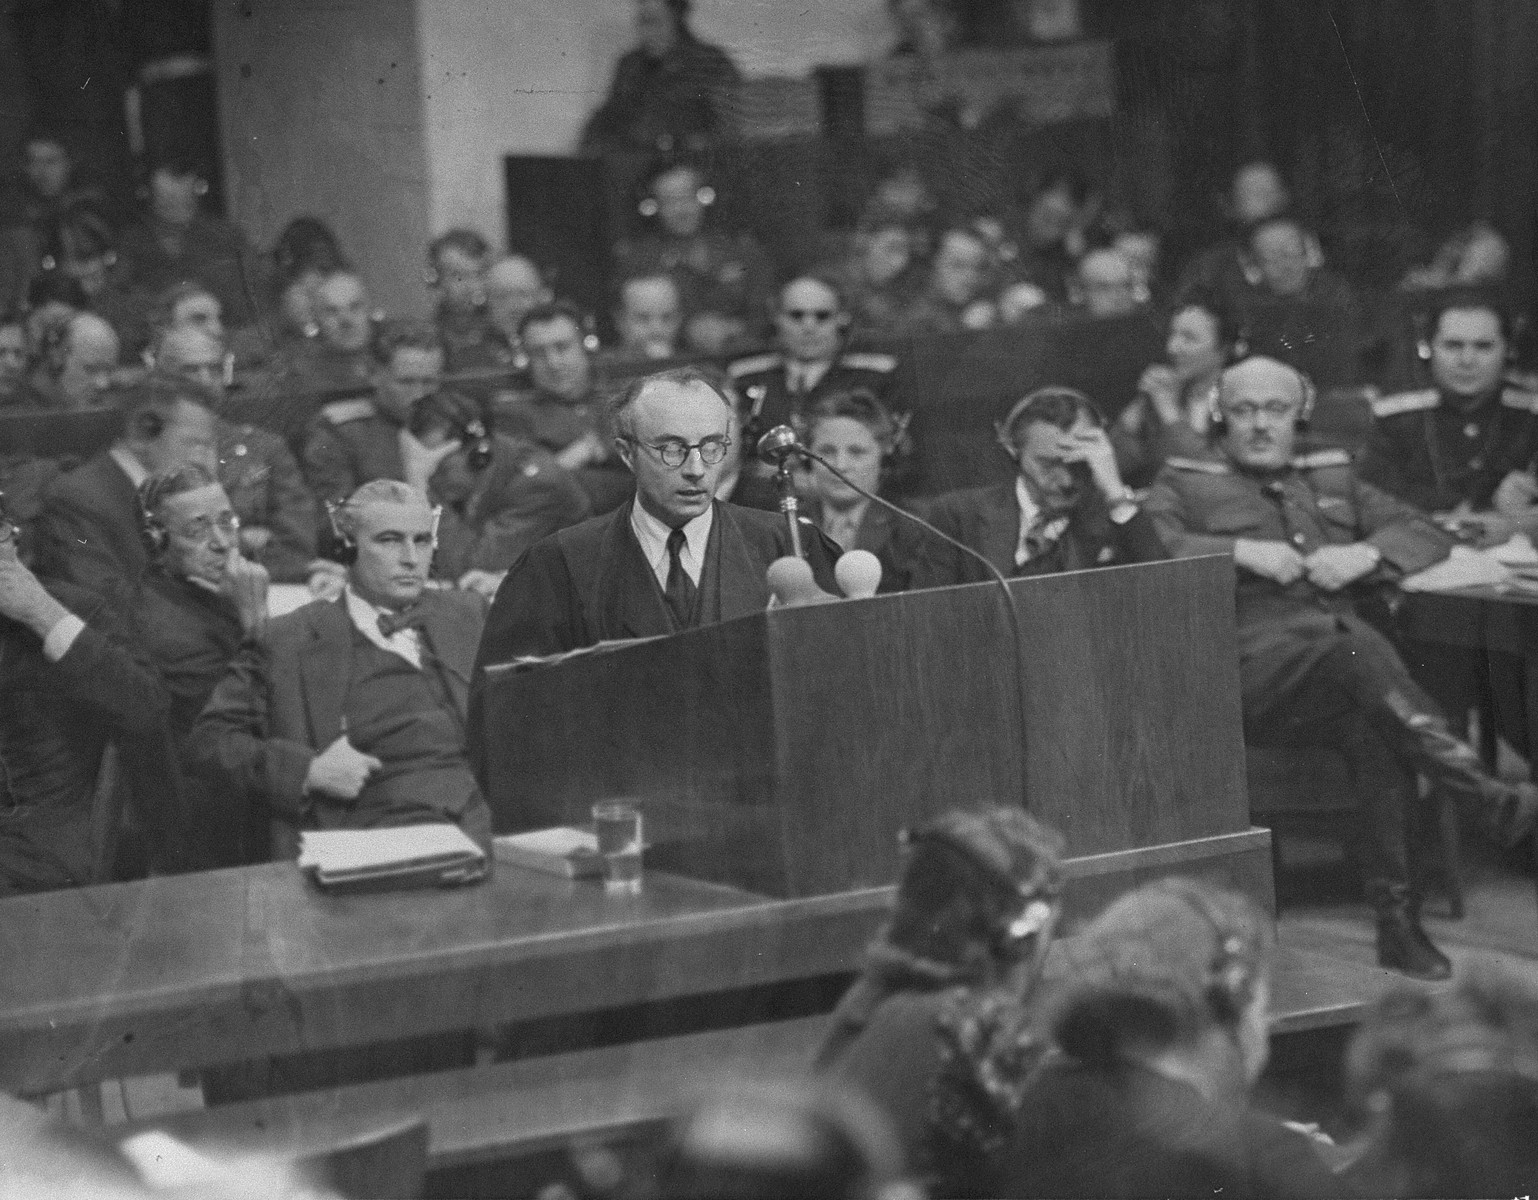 Defense counsellor Dr. Alfred Seidl, the counsel for Hans Frank and the second counsel for Rudolf Hess, presents an argument at the International Military Tribunal trial of war criminals at Nuremberg.